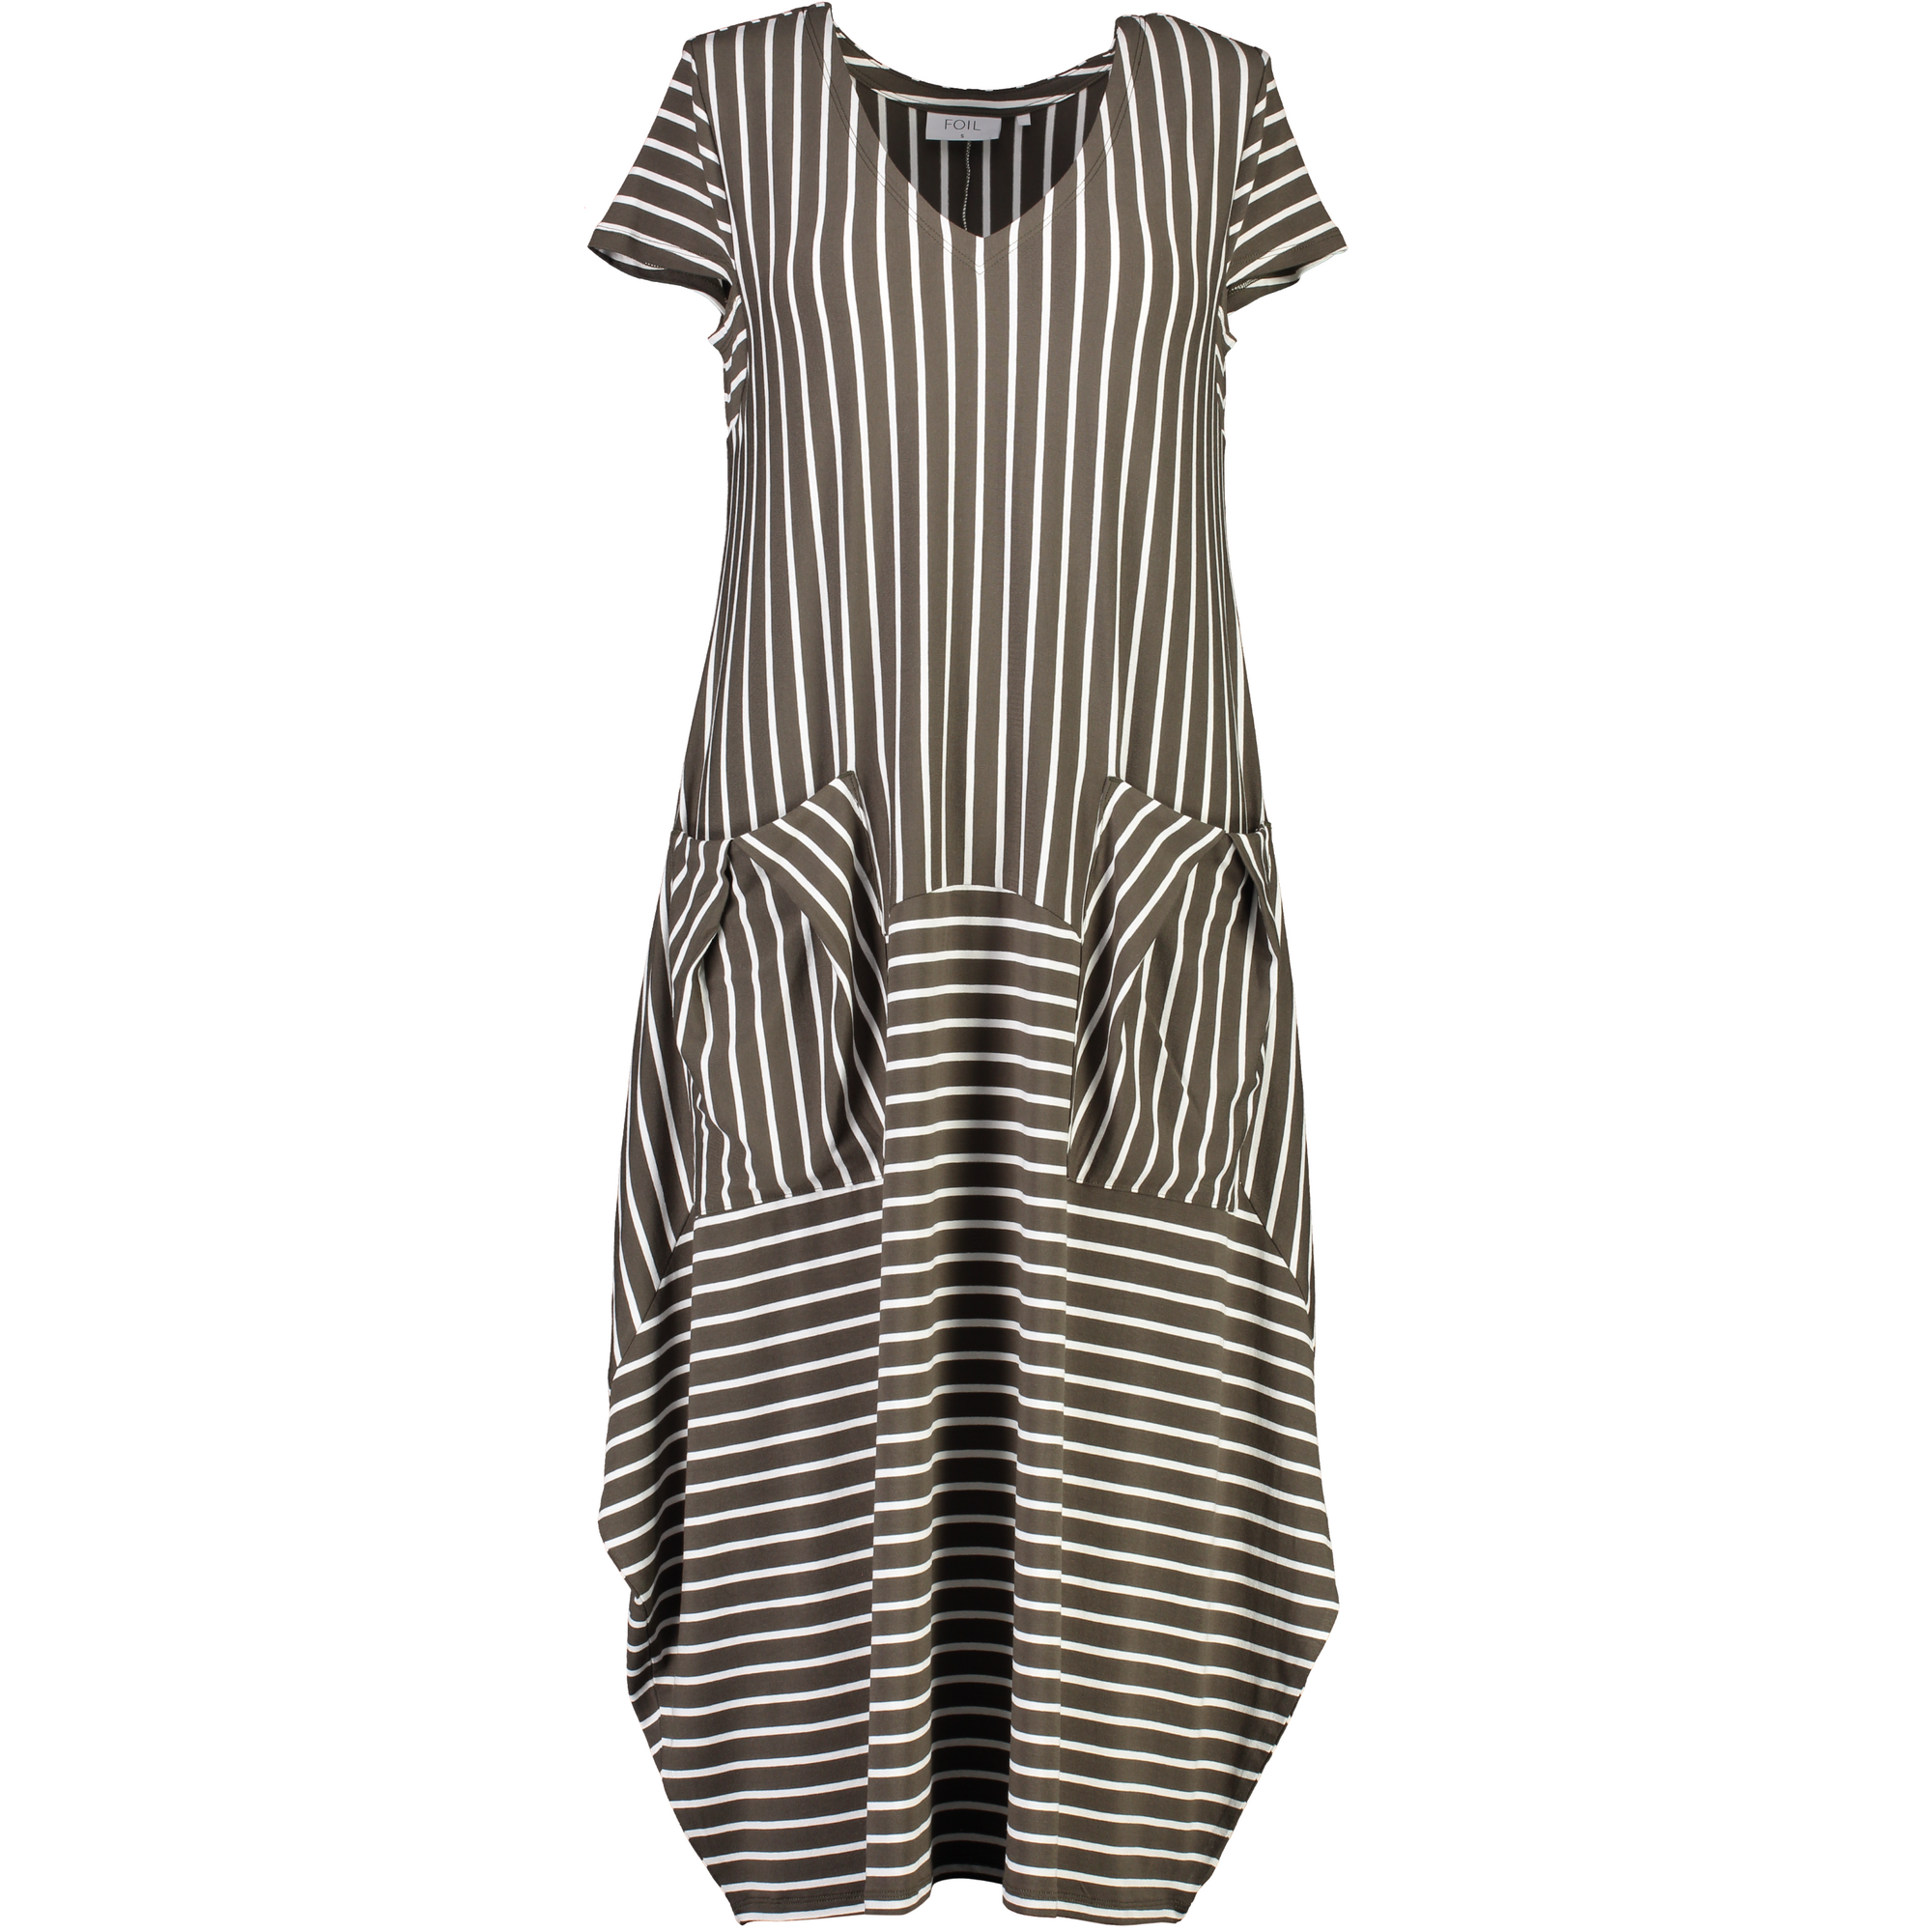 Foil Soft Update Pocket Dress in Olive stripe